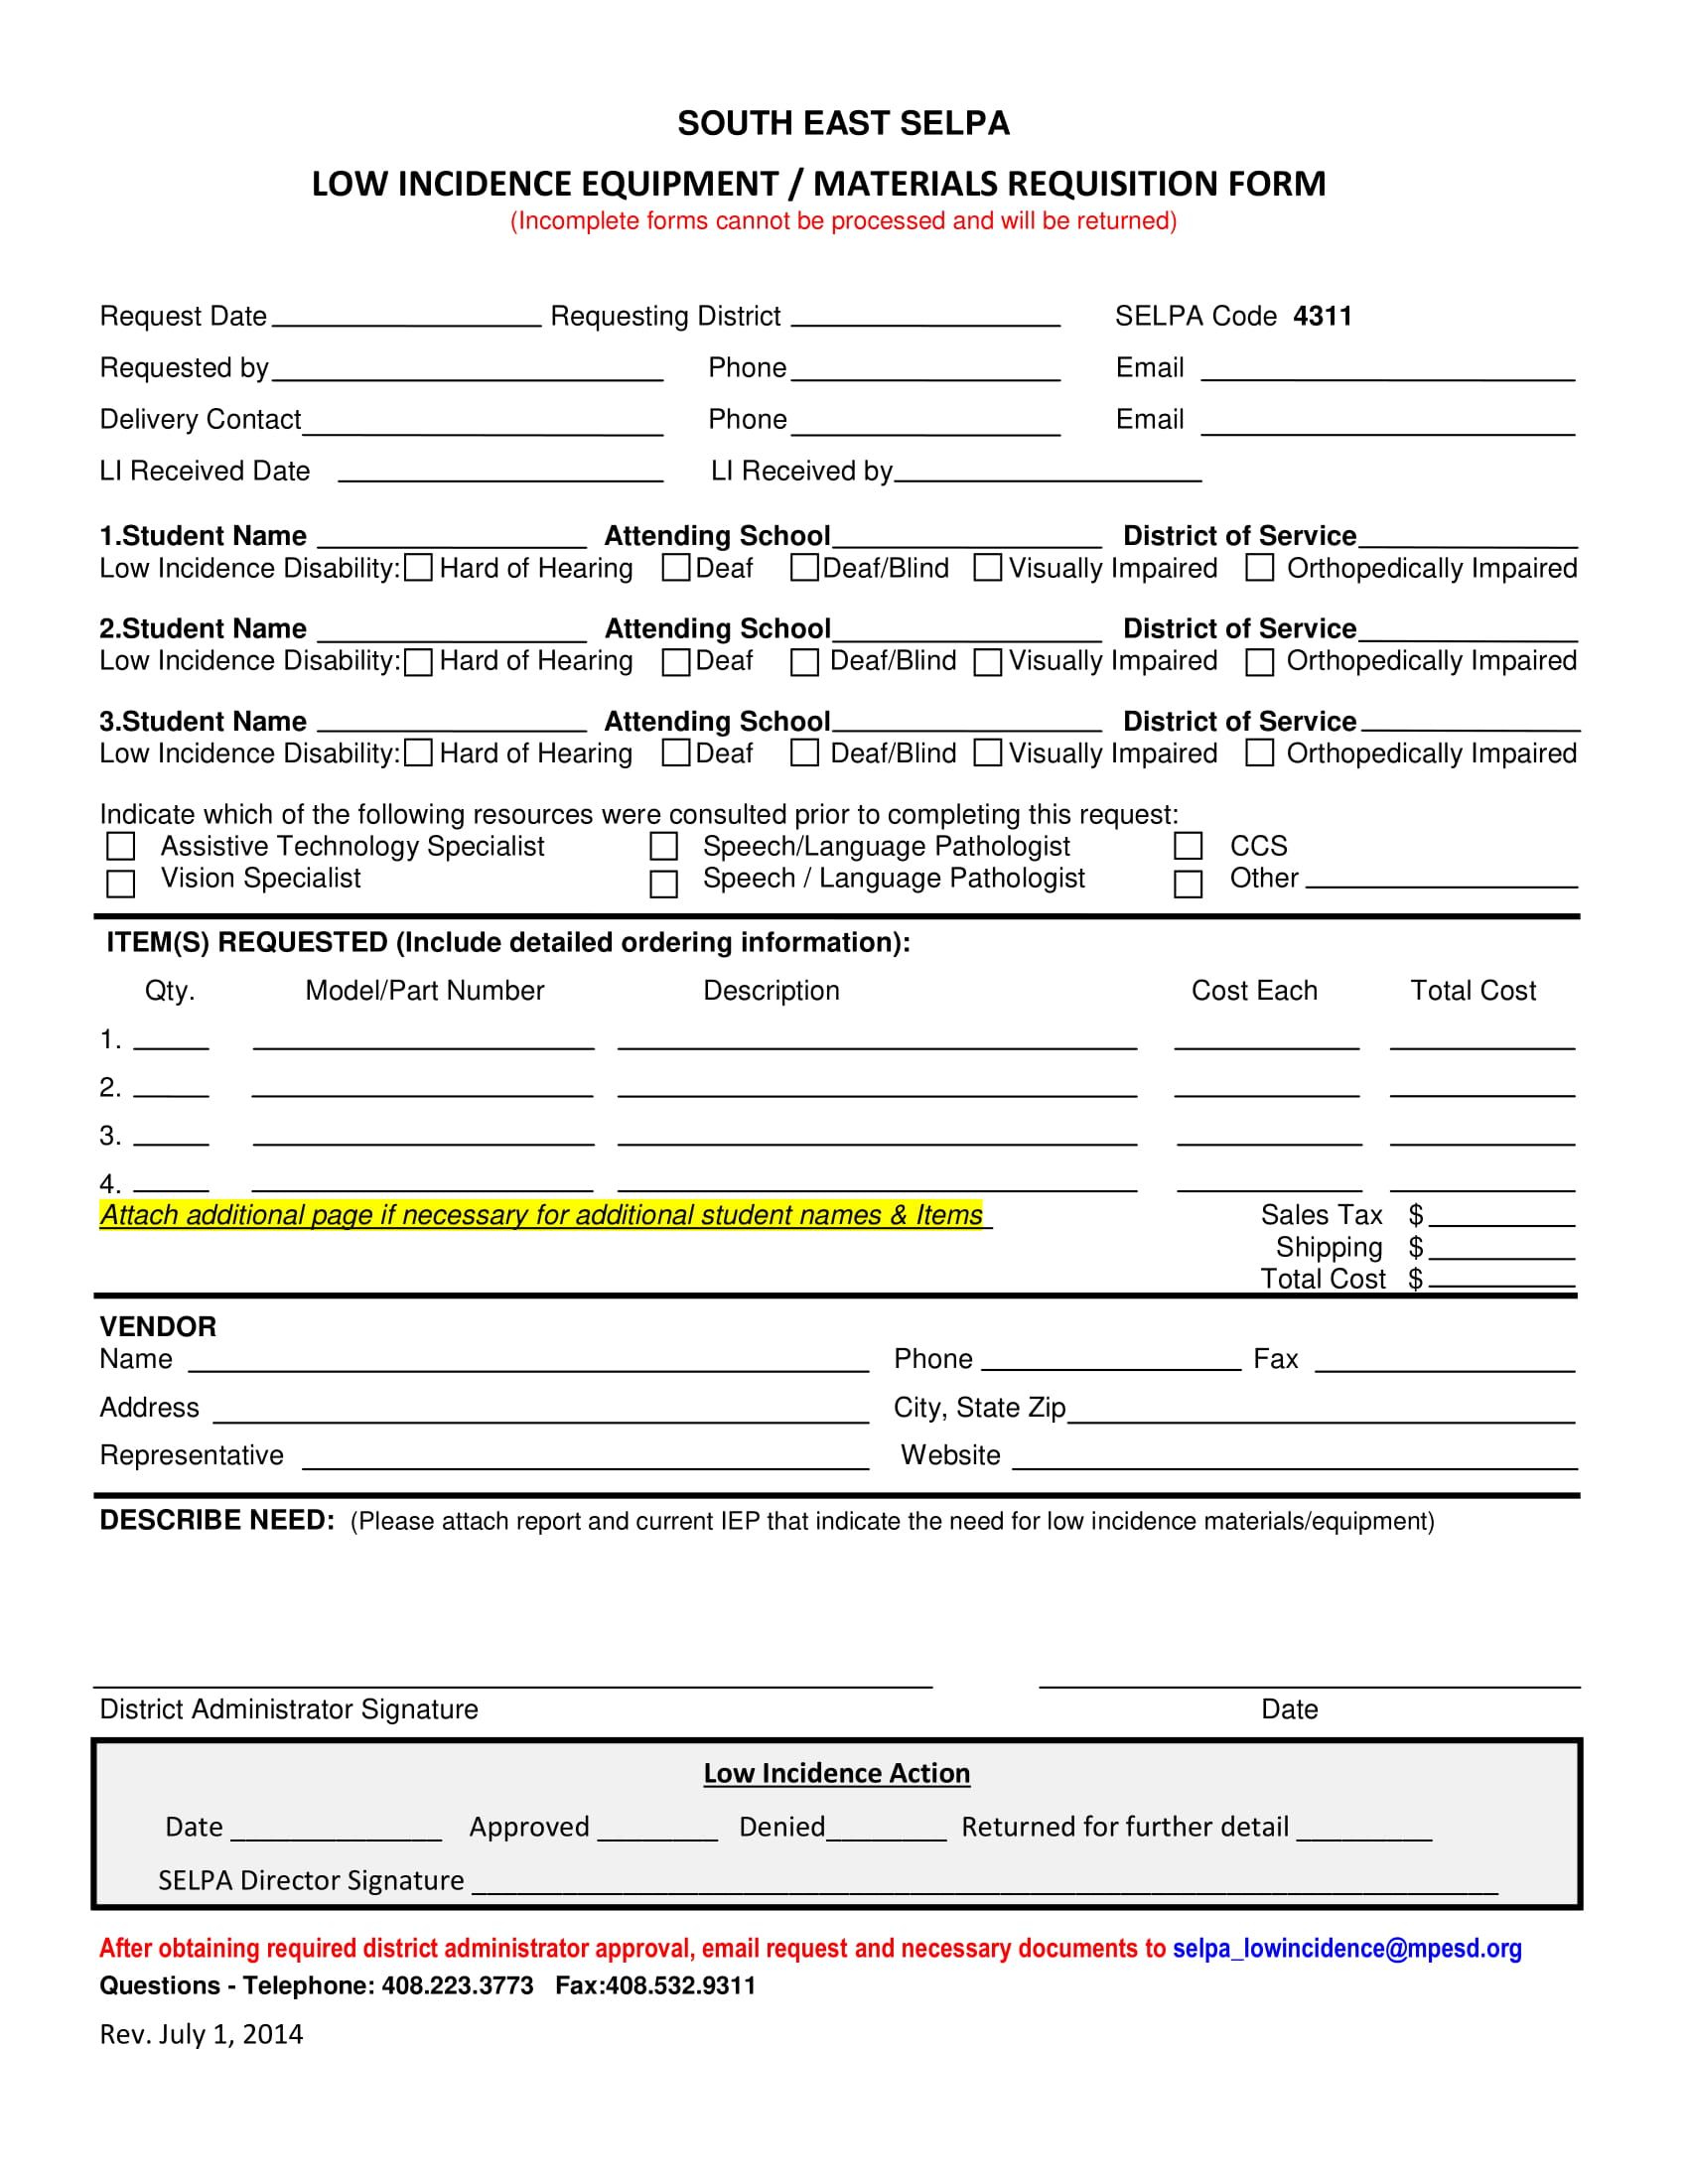 equipment or material requisition form 1